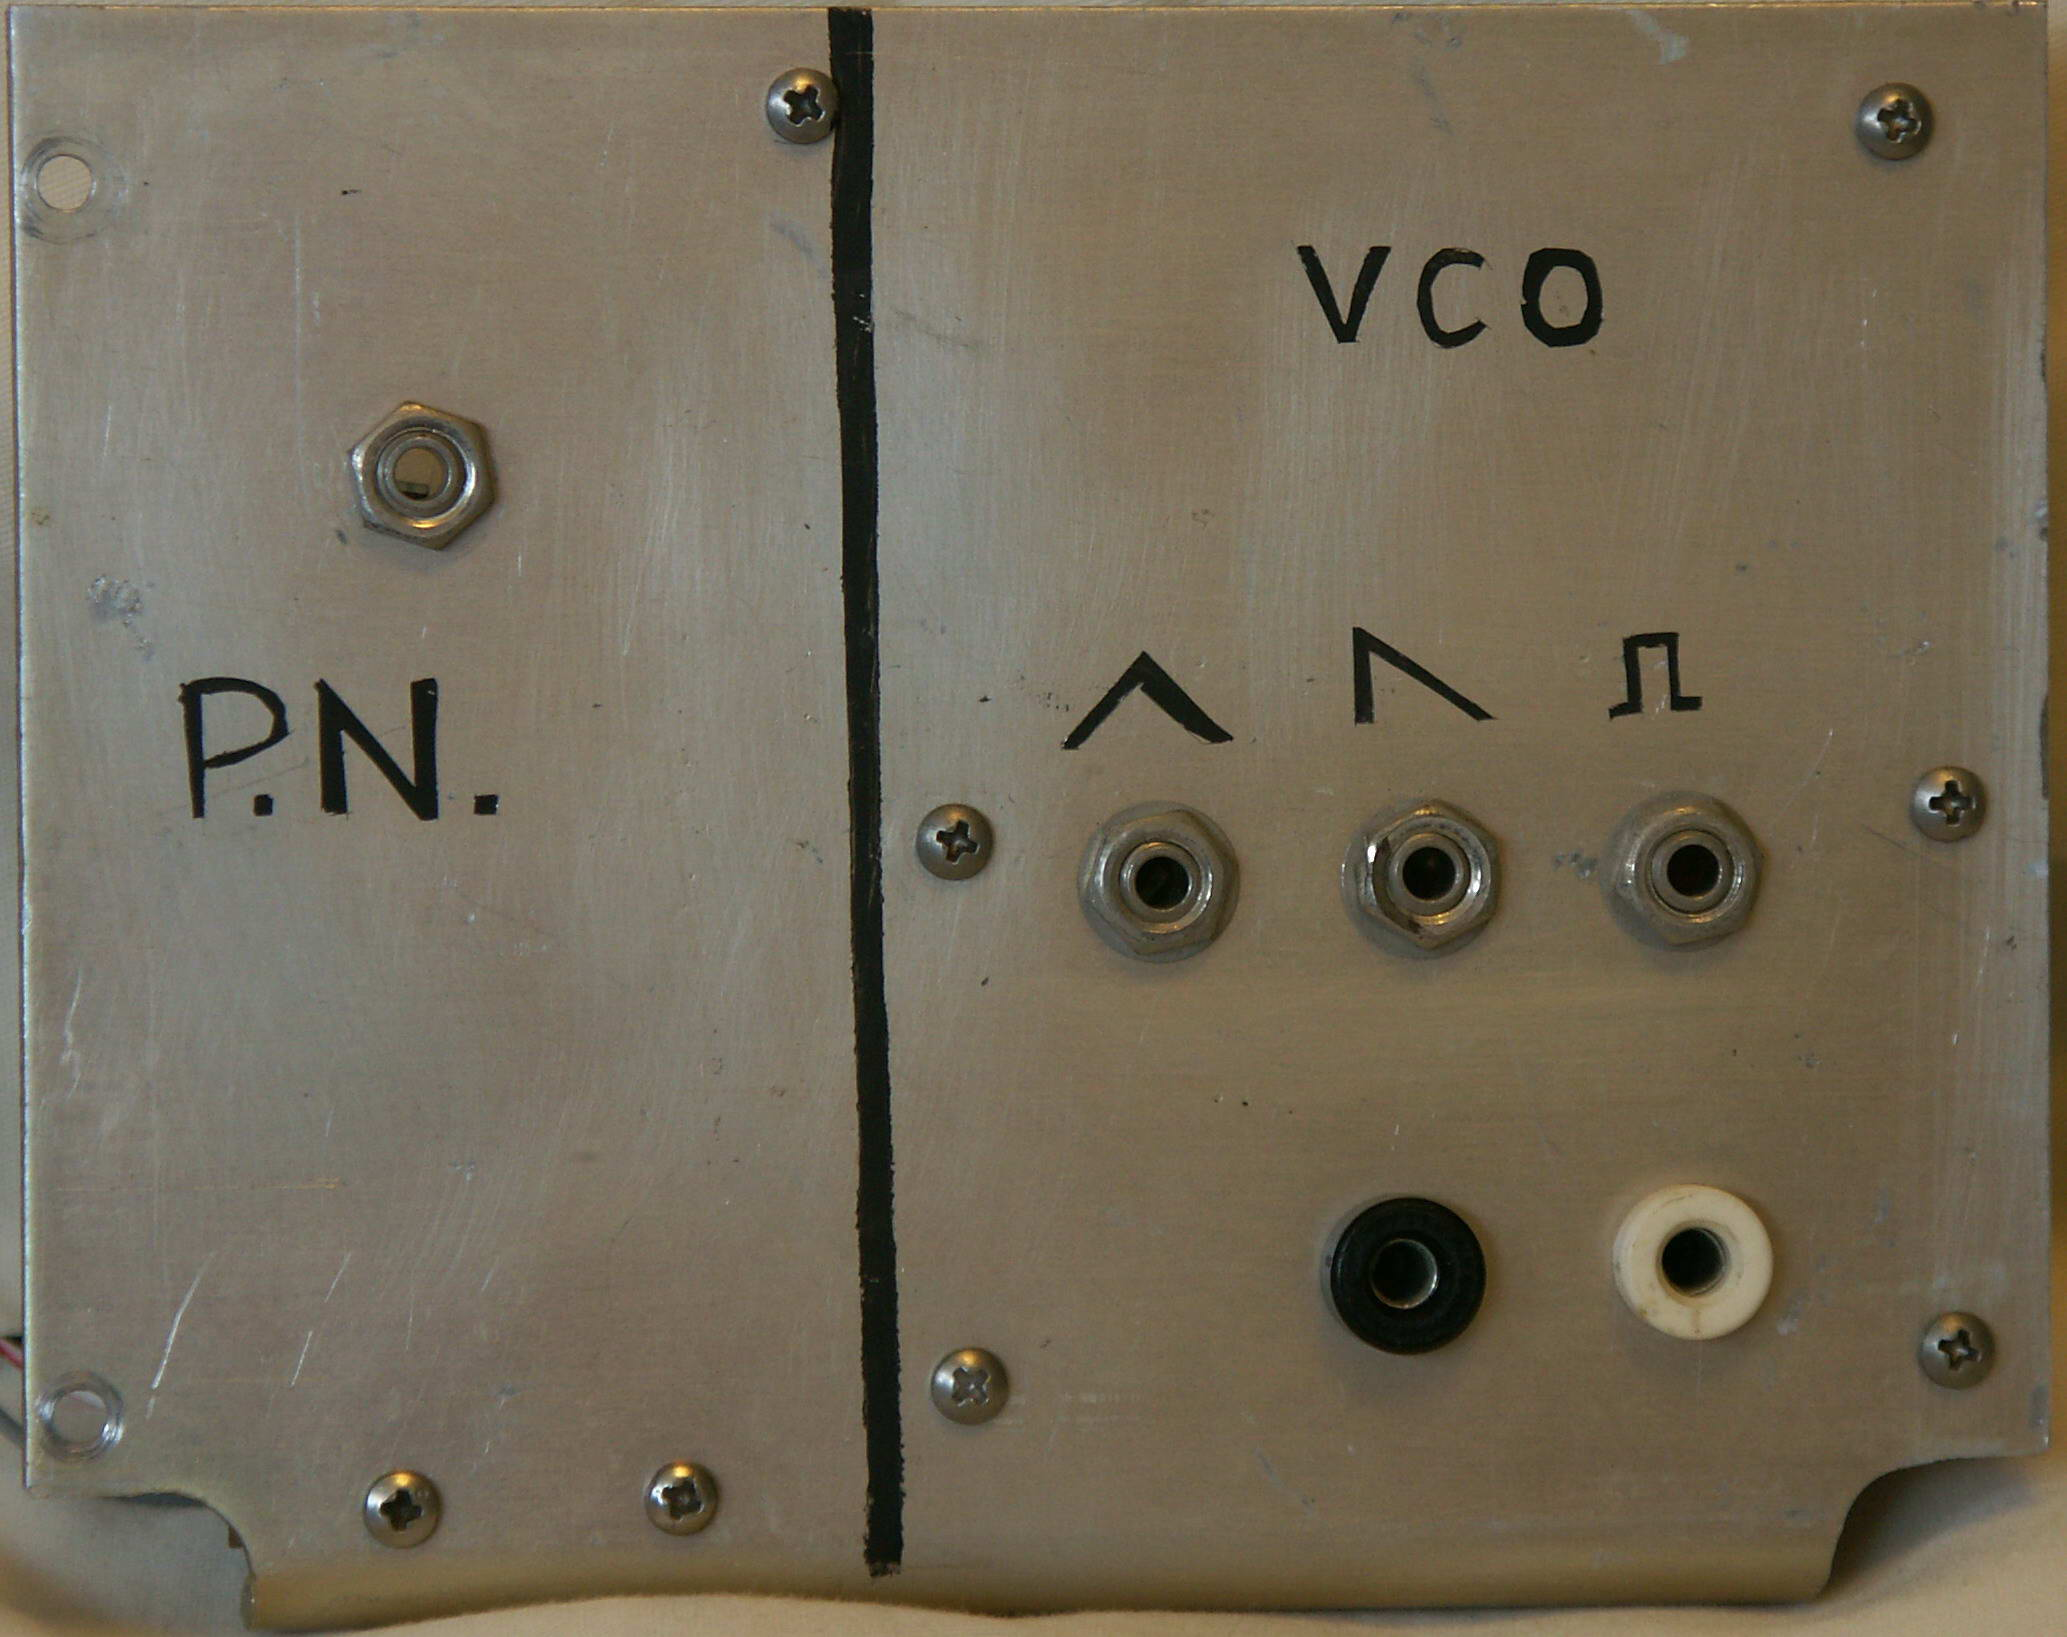 Full Text Of Synth Diy Mailing List White Noise Generator Circuit With Mm5837n